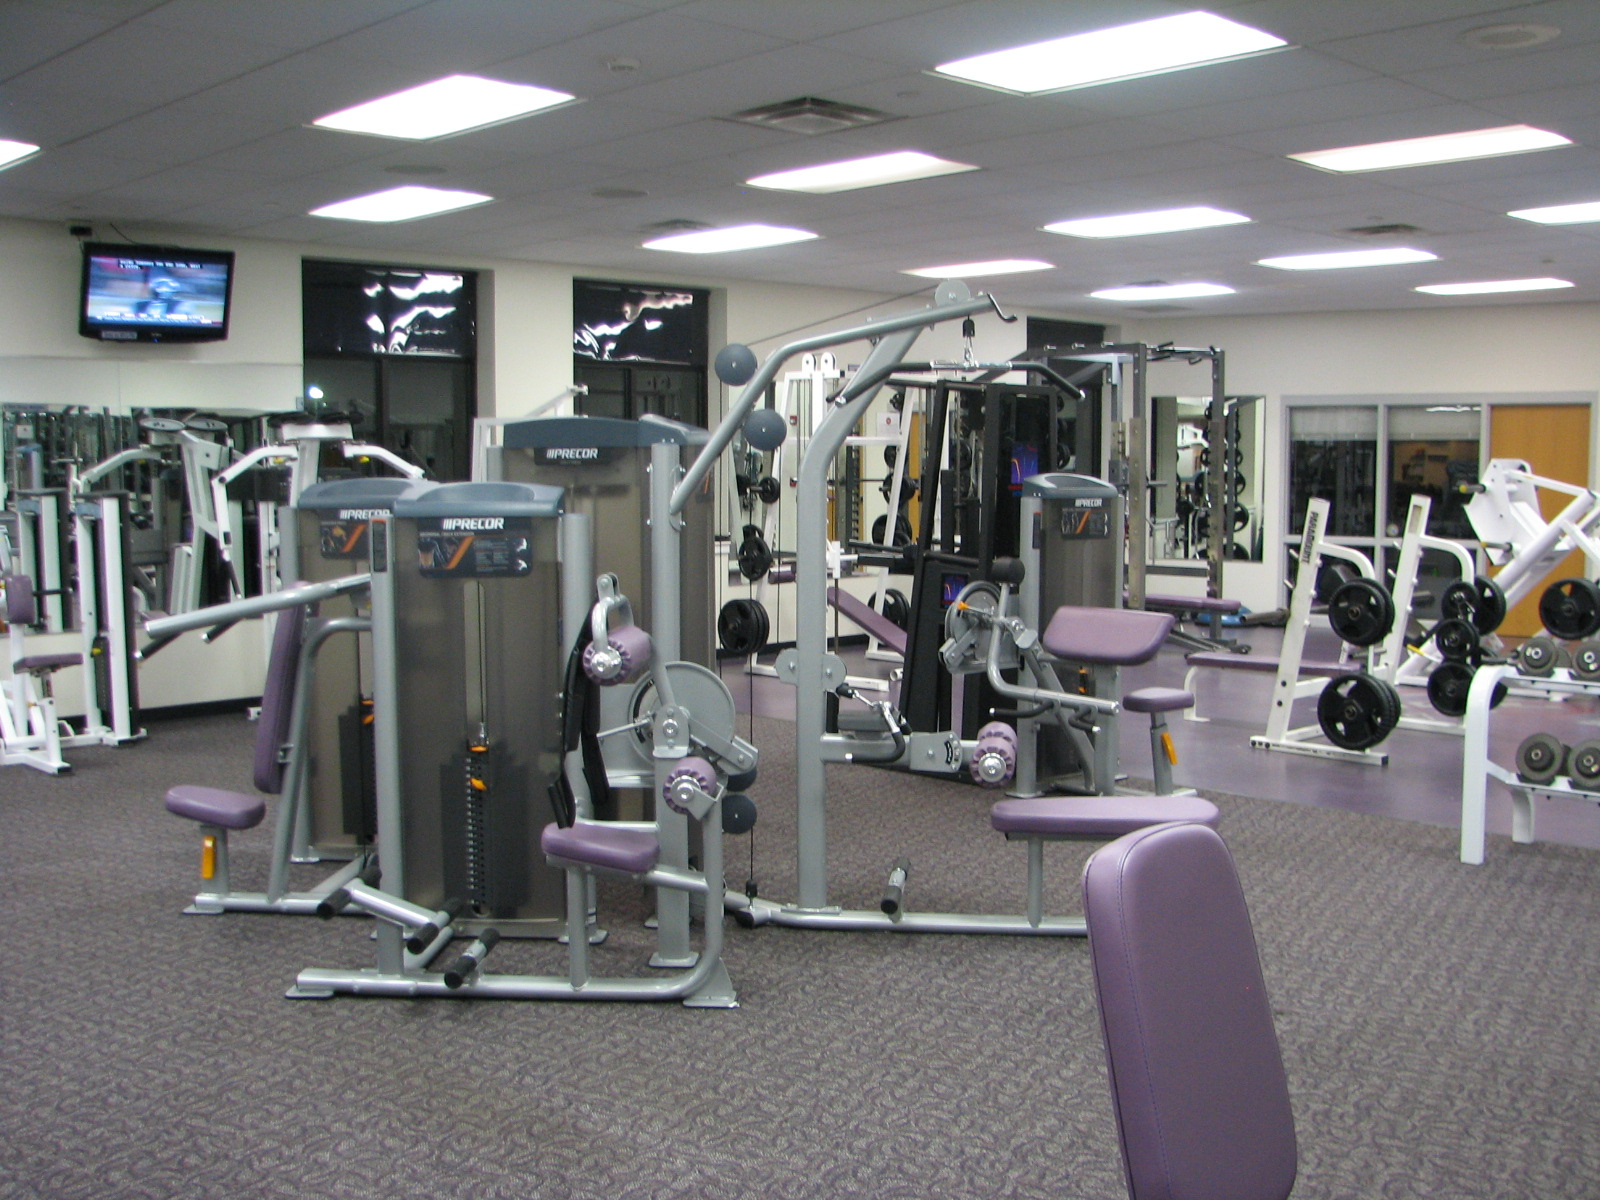 Gym equipment shop kingston